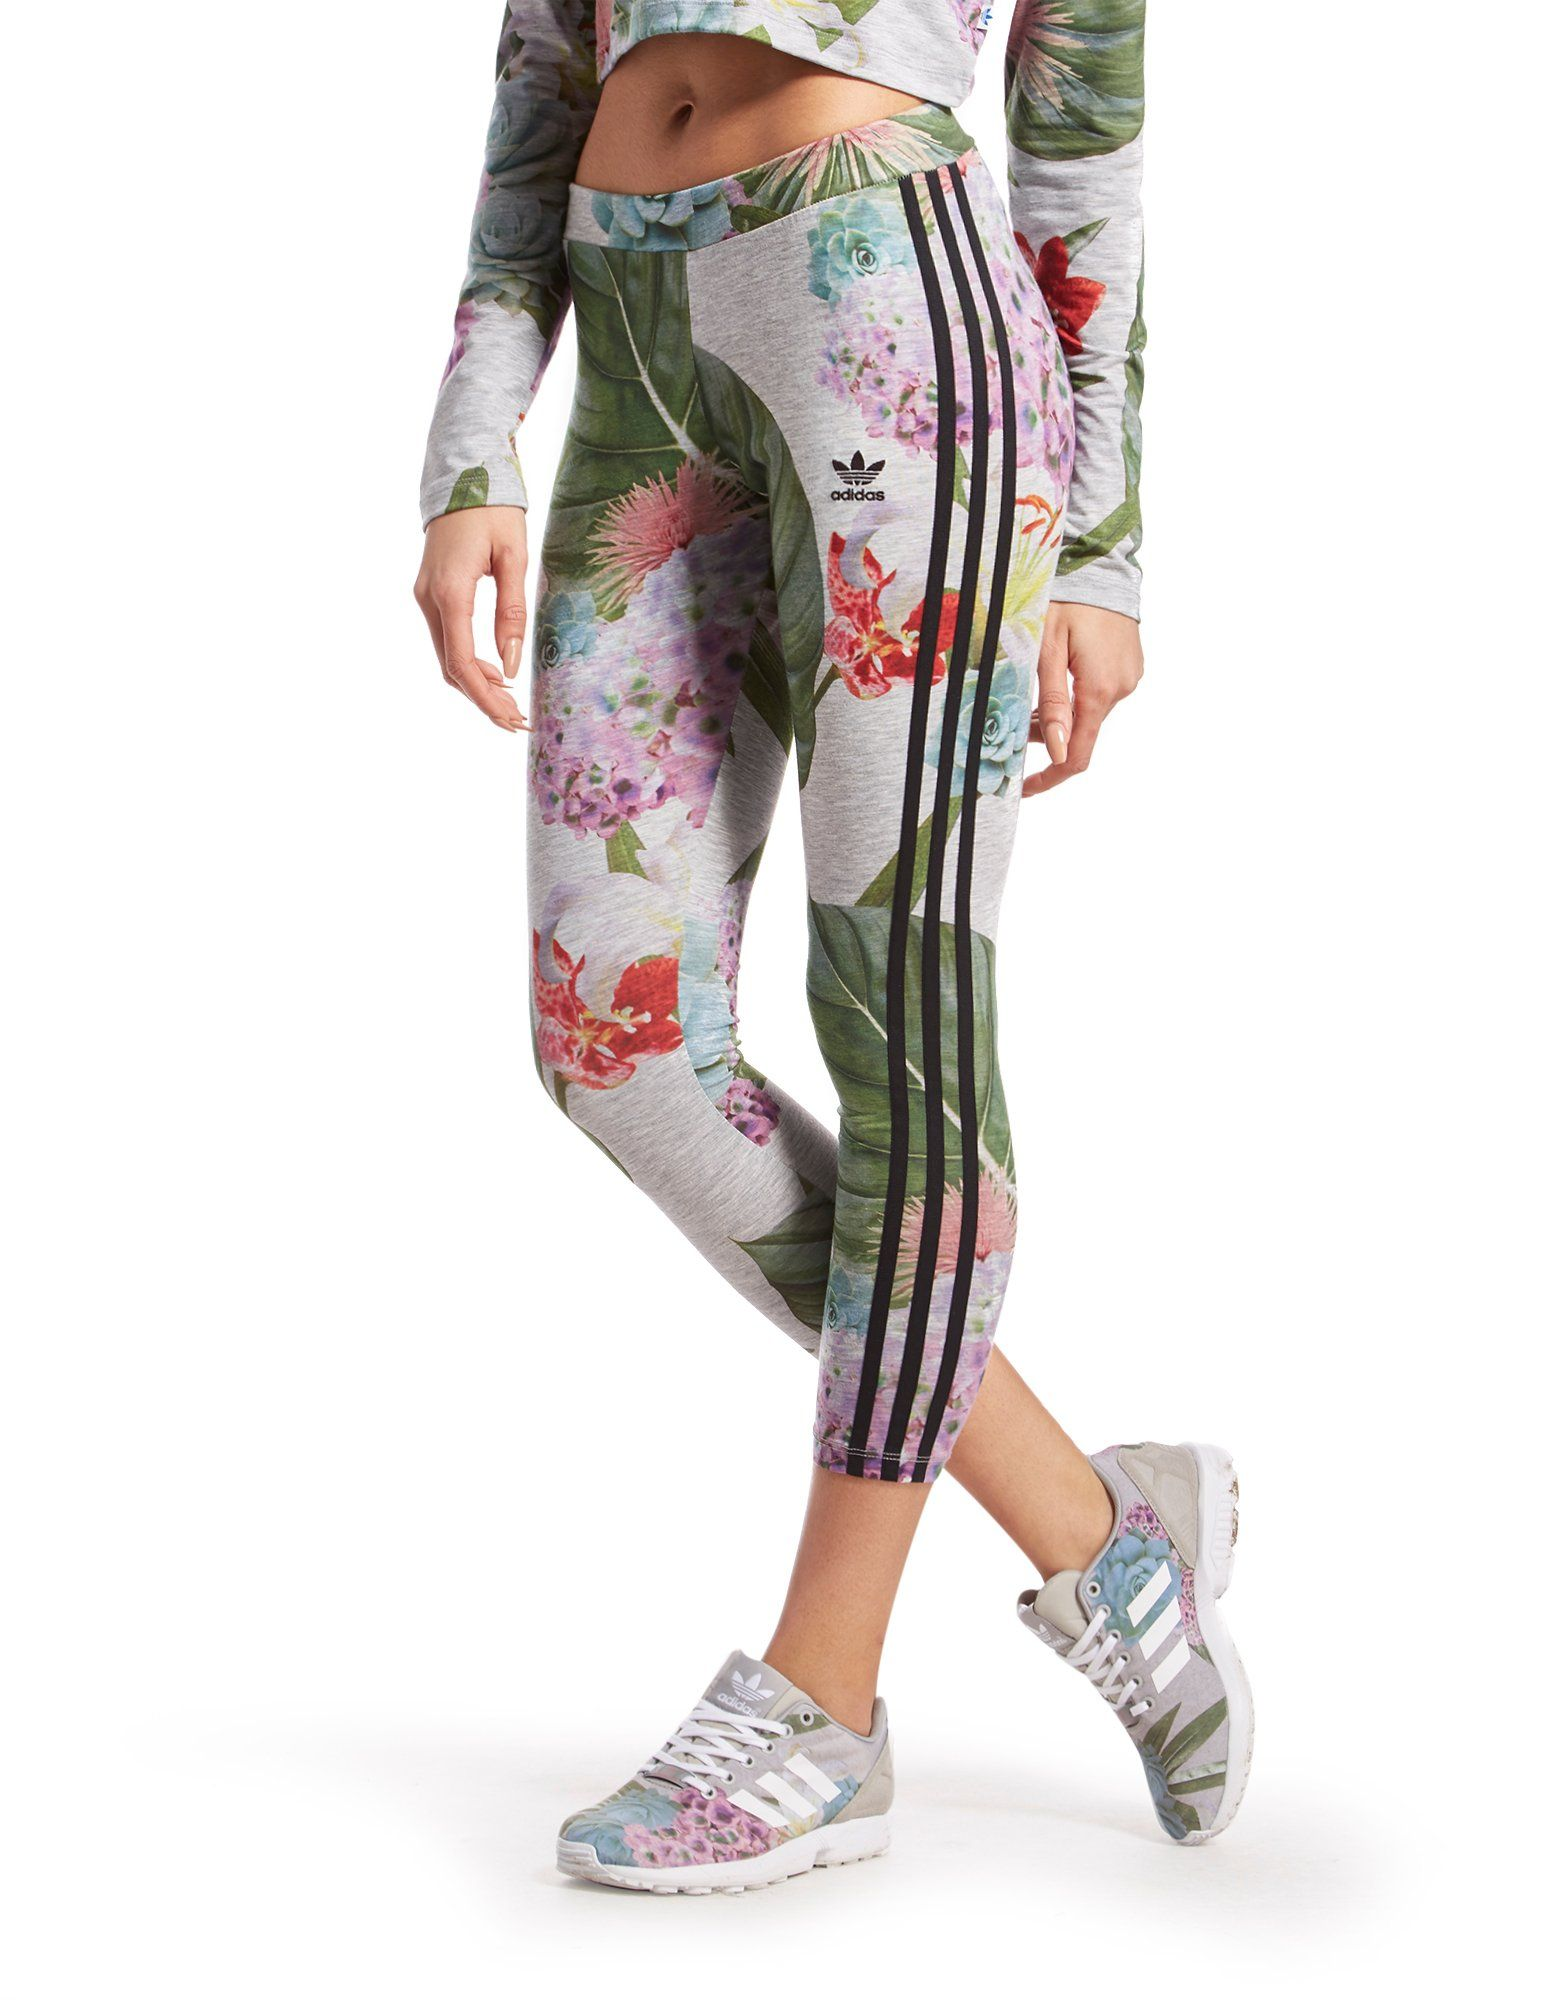 adidas Originals Training Leggings Floral Pack